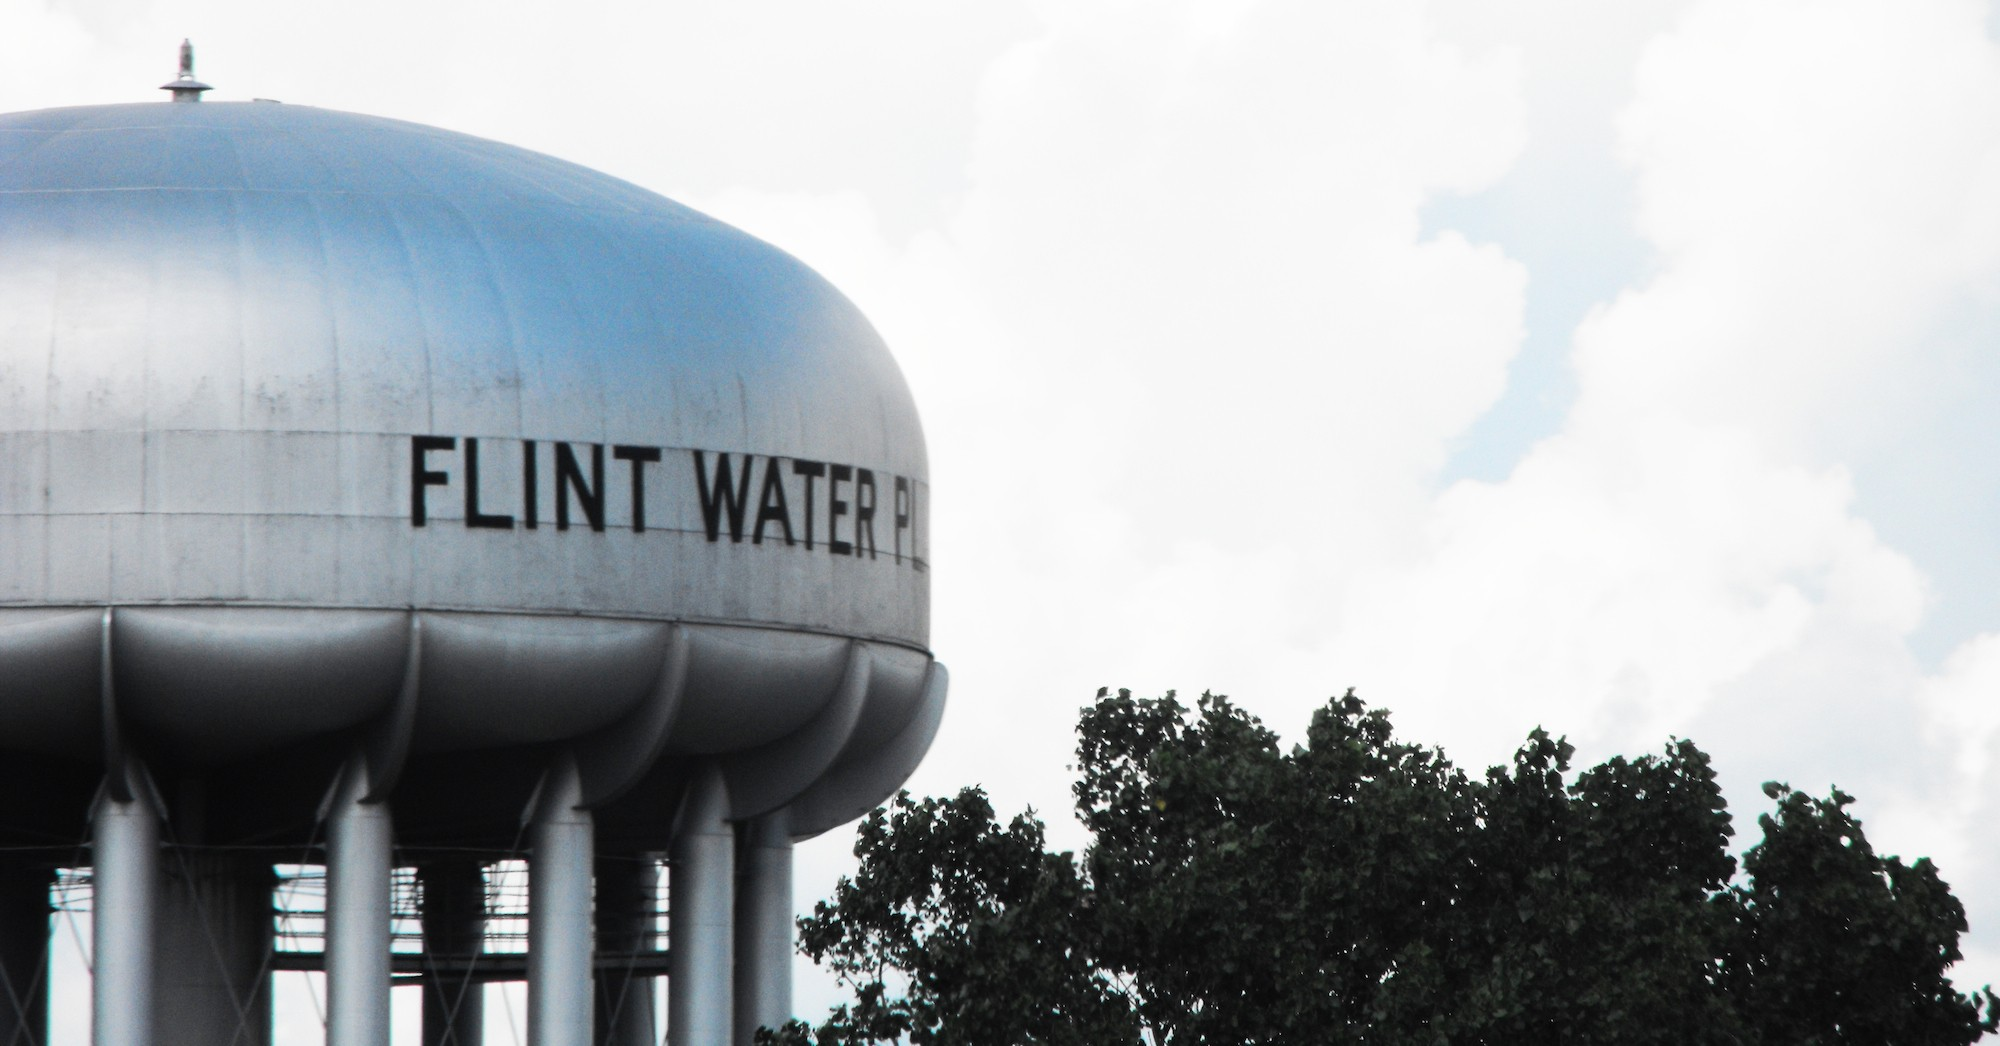 Natural Hazards Center || The Flint Water Crisis and Beyond